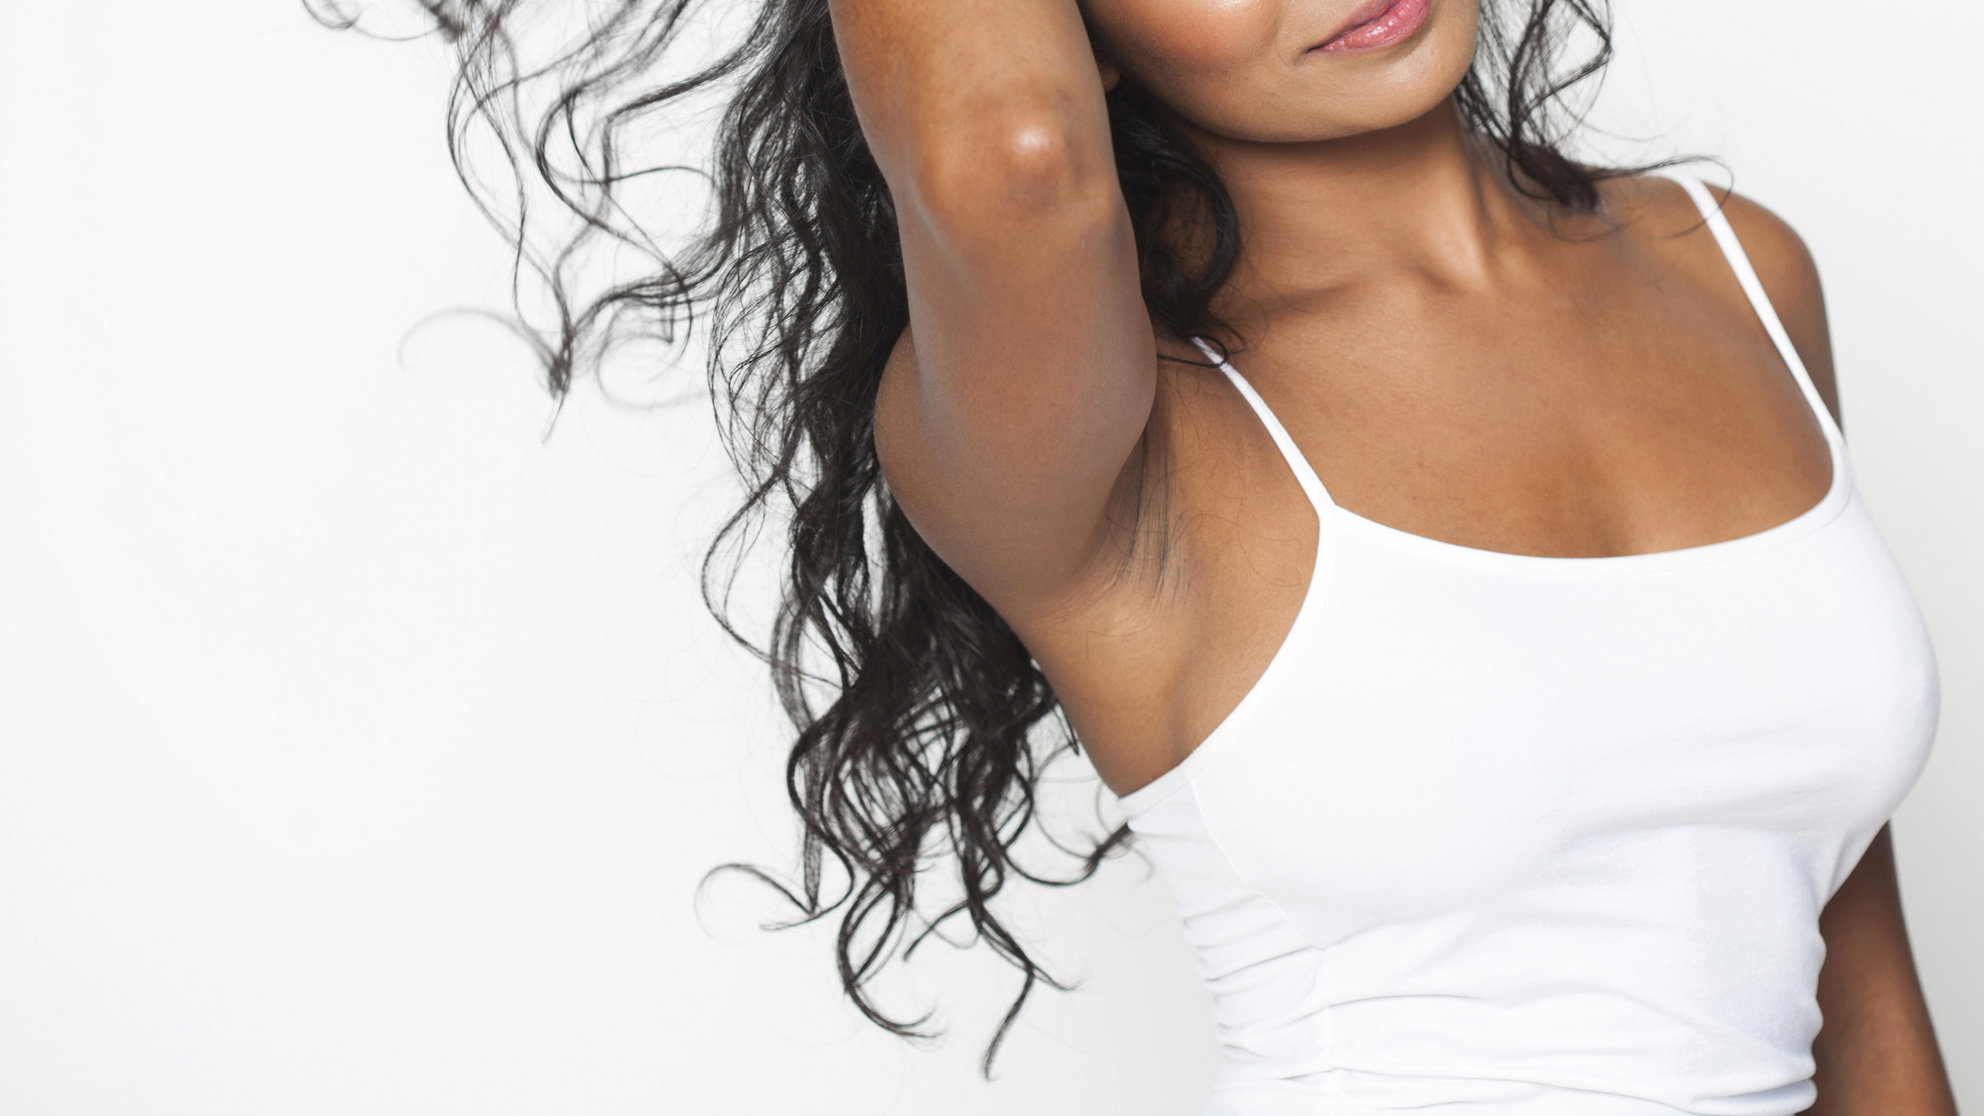 This Natural Deodorant Alternative Could Leave You With a Chemical Burn